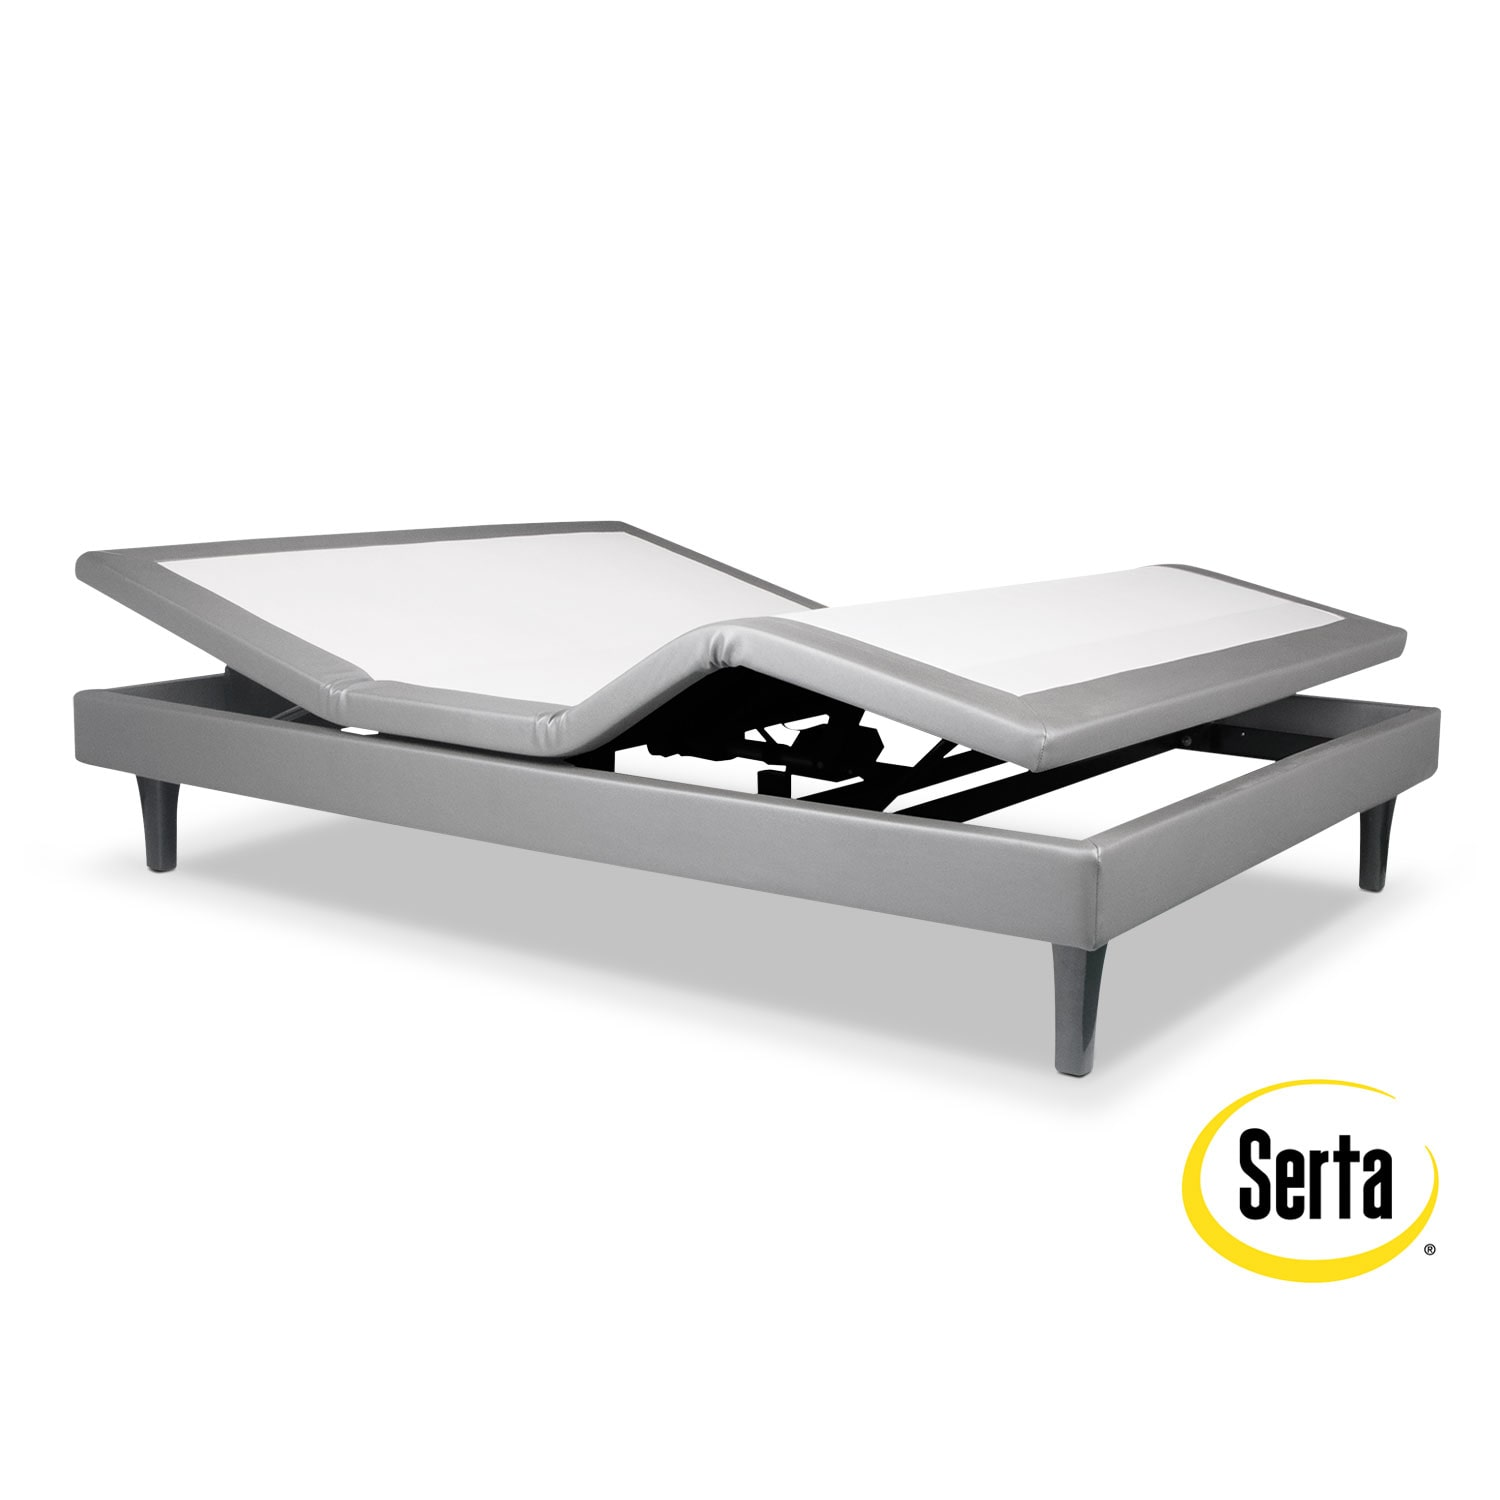 Serta Motion Perfect III Twin XL Adjustable Base